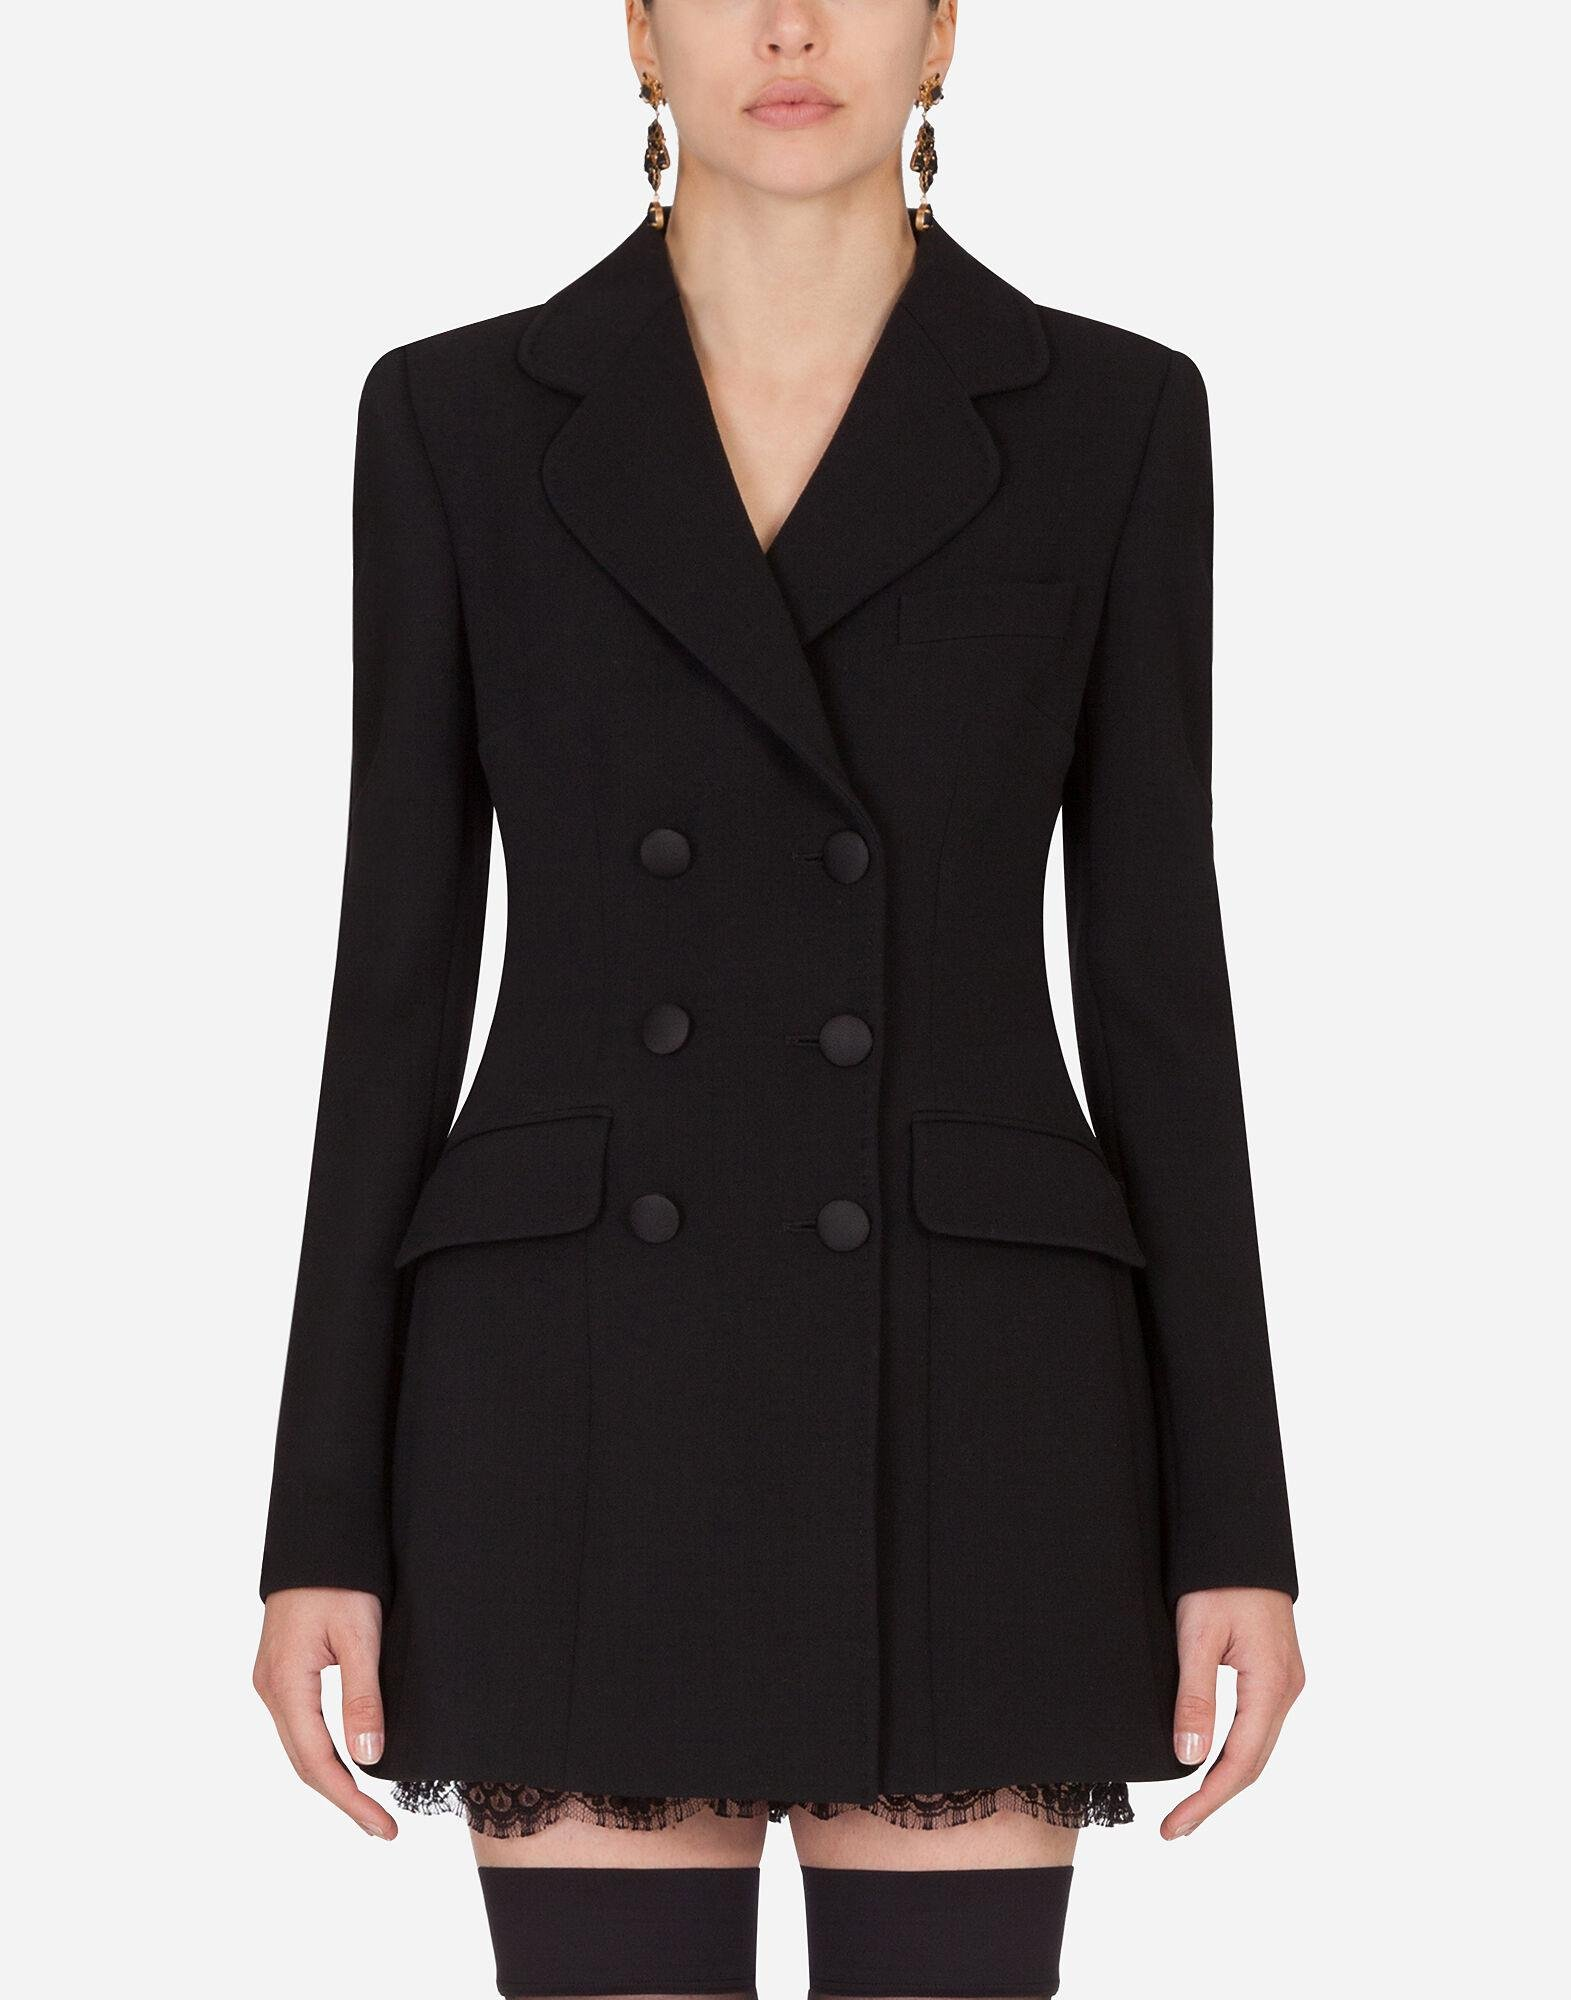 Long double-breasted Dolce jacket